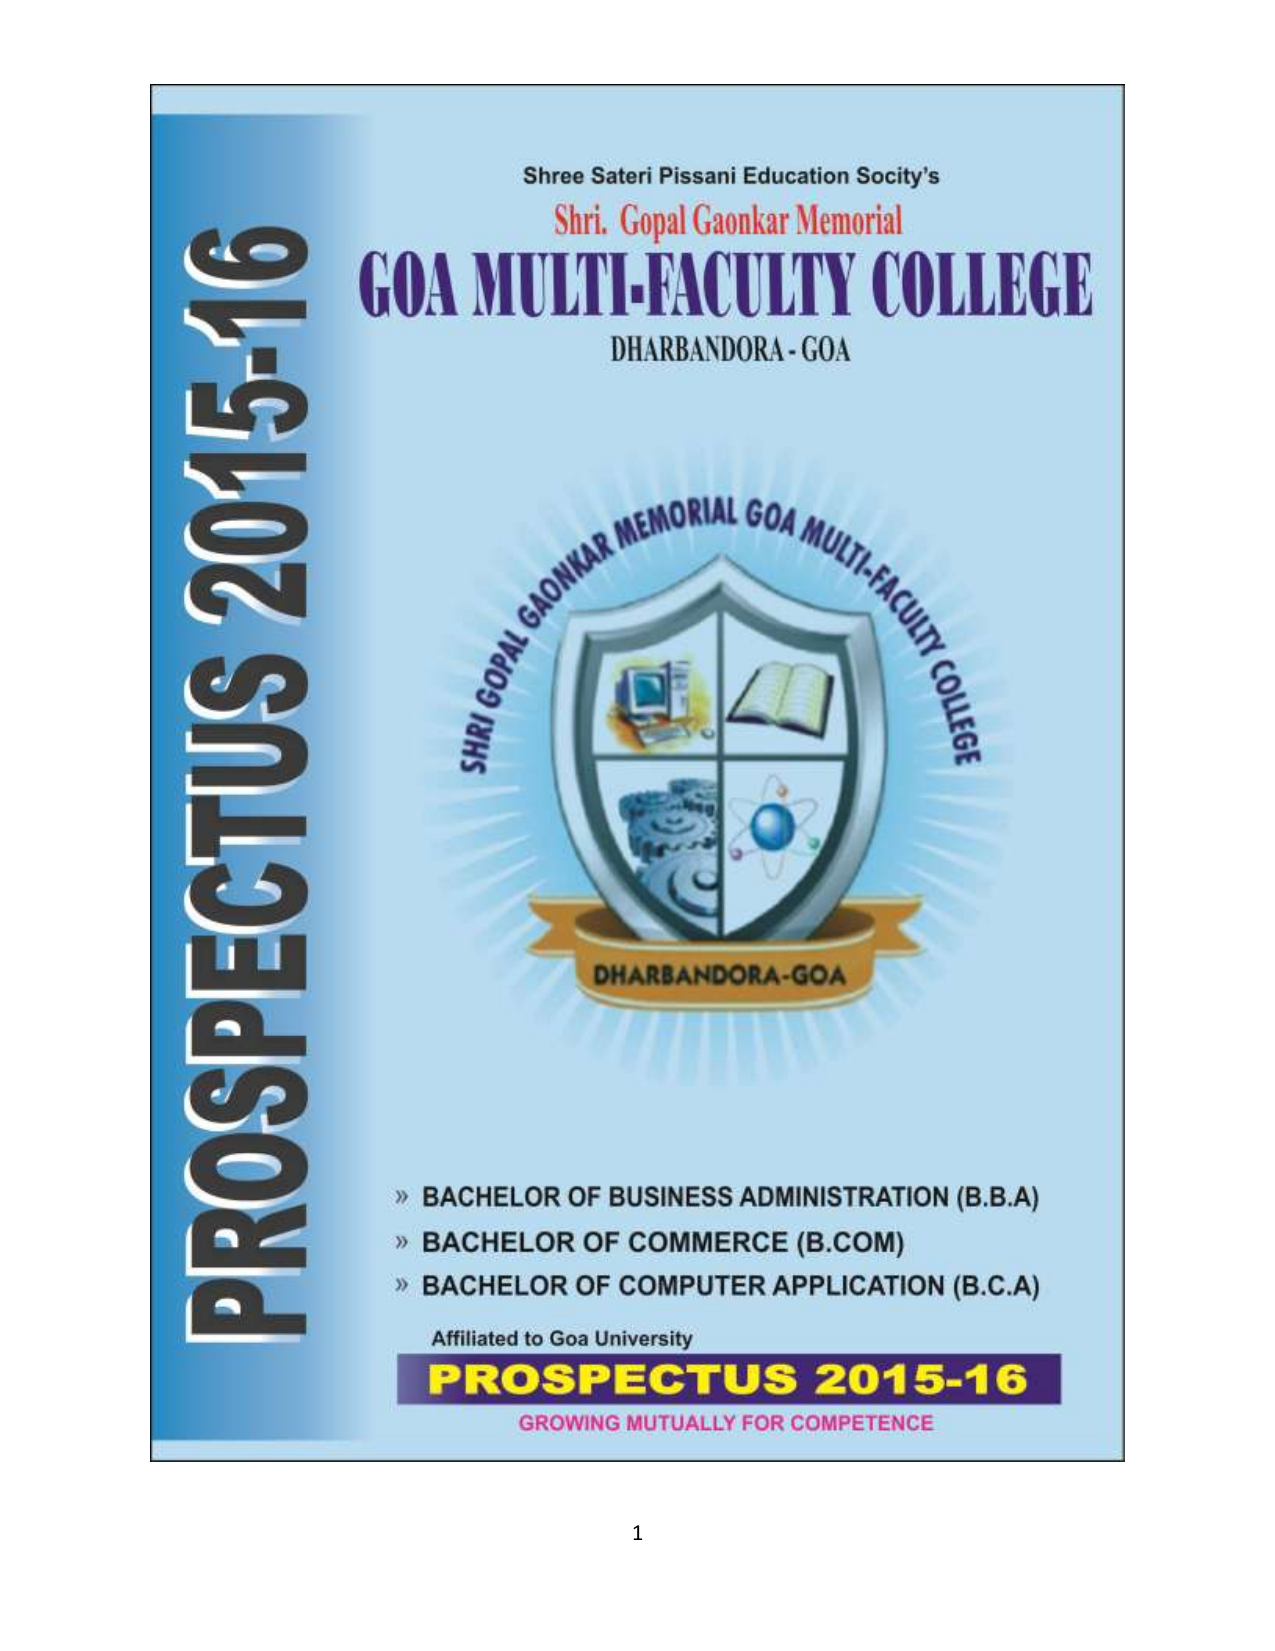 college prospectus 2015-2016 - Goa Multi Faculty College